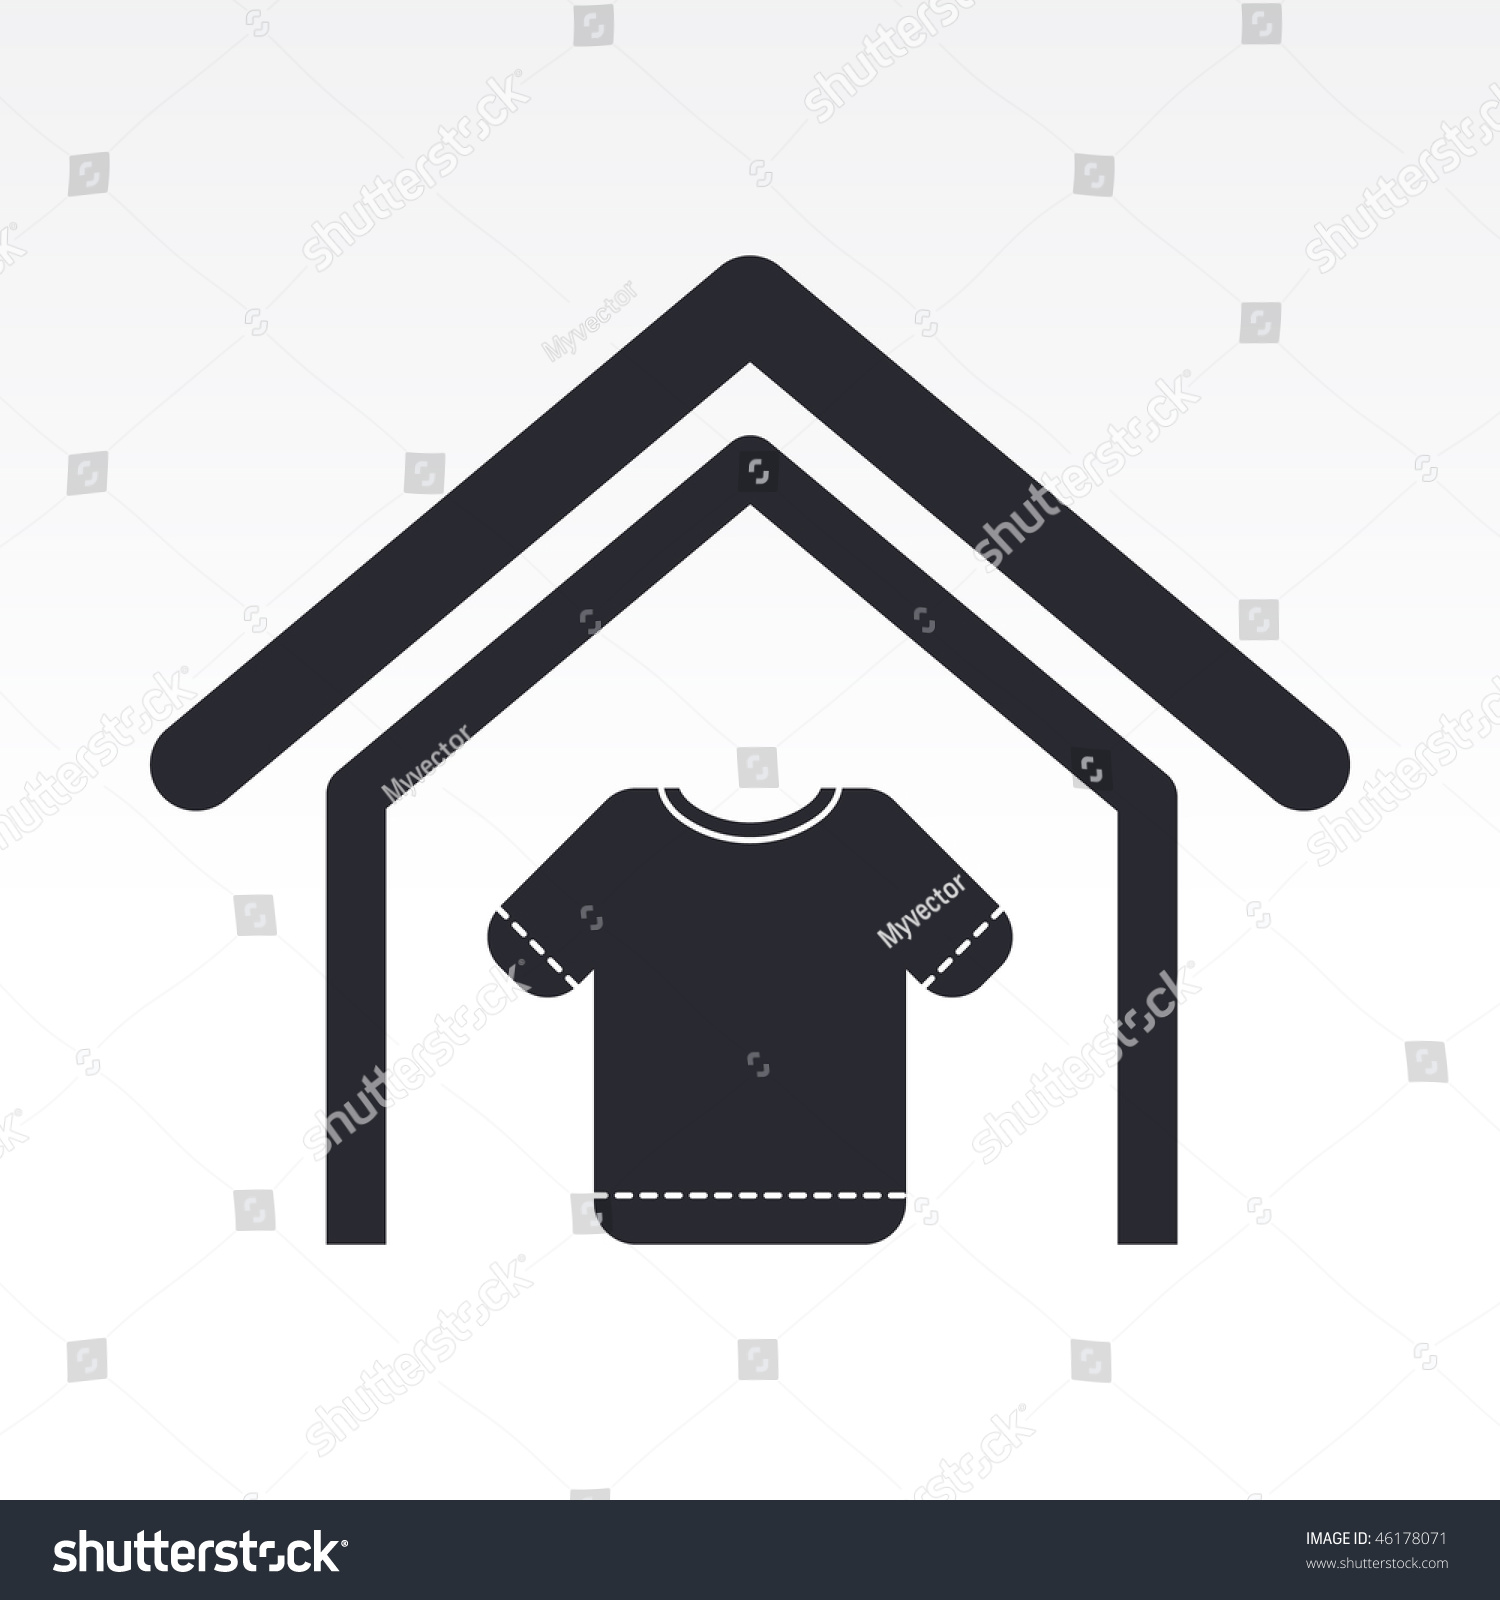 Vector illustration modern single icon depicting stock for House music symbol